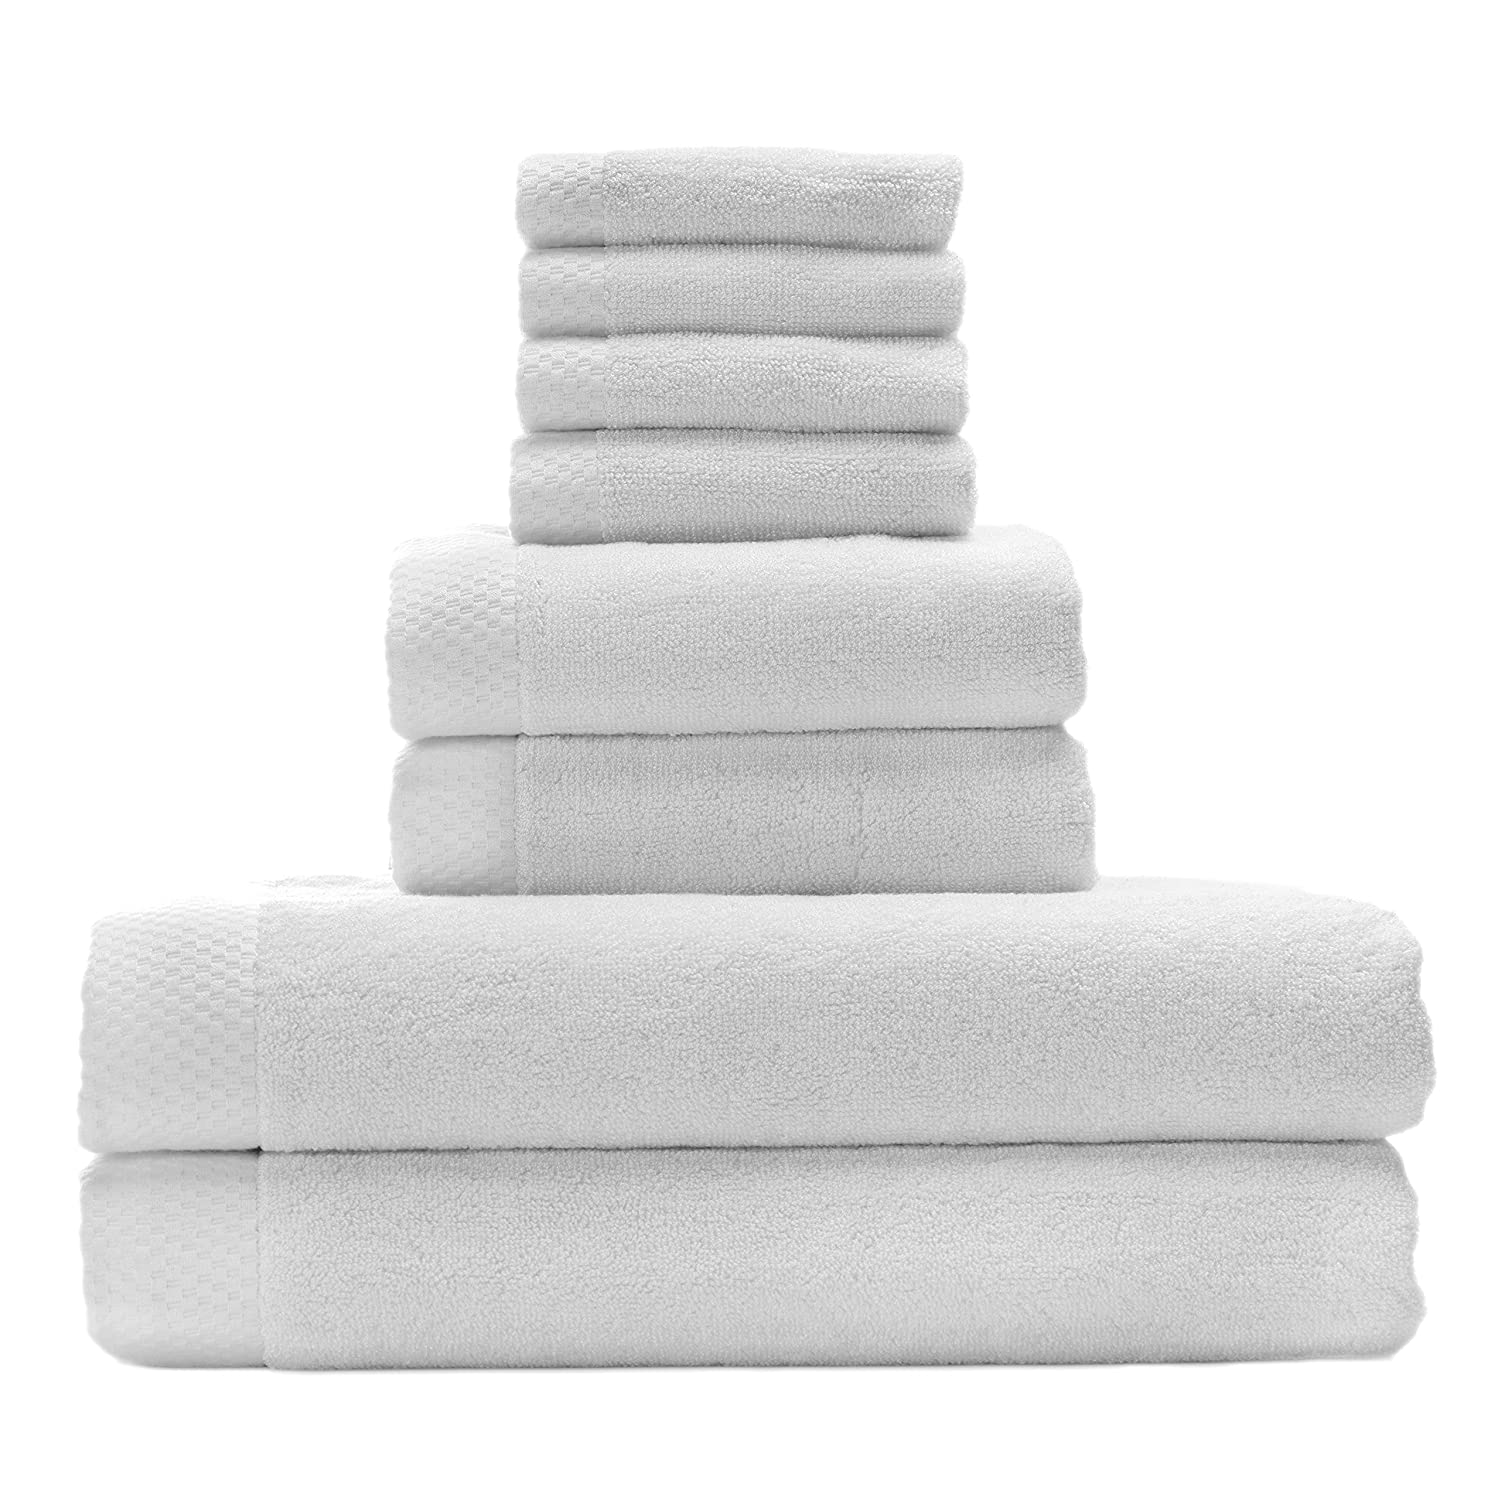 Silky Soft Organic Bamboo Bath Towel Set Bundles By BedVoyage the Eco Resort Collection of Spa Luxuriousness and Opulence In Your Own Bathroom (White) 21980721